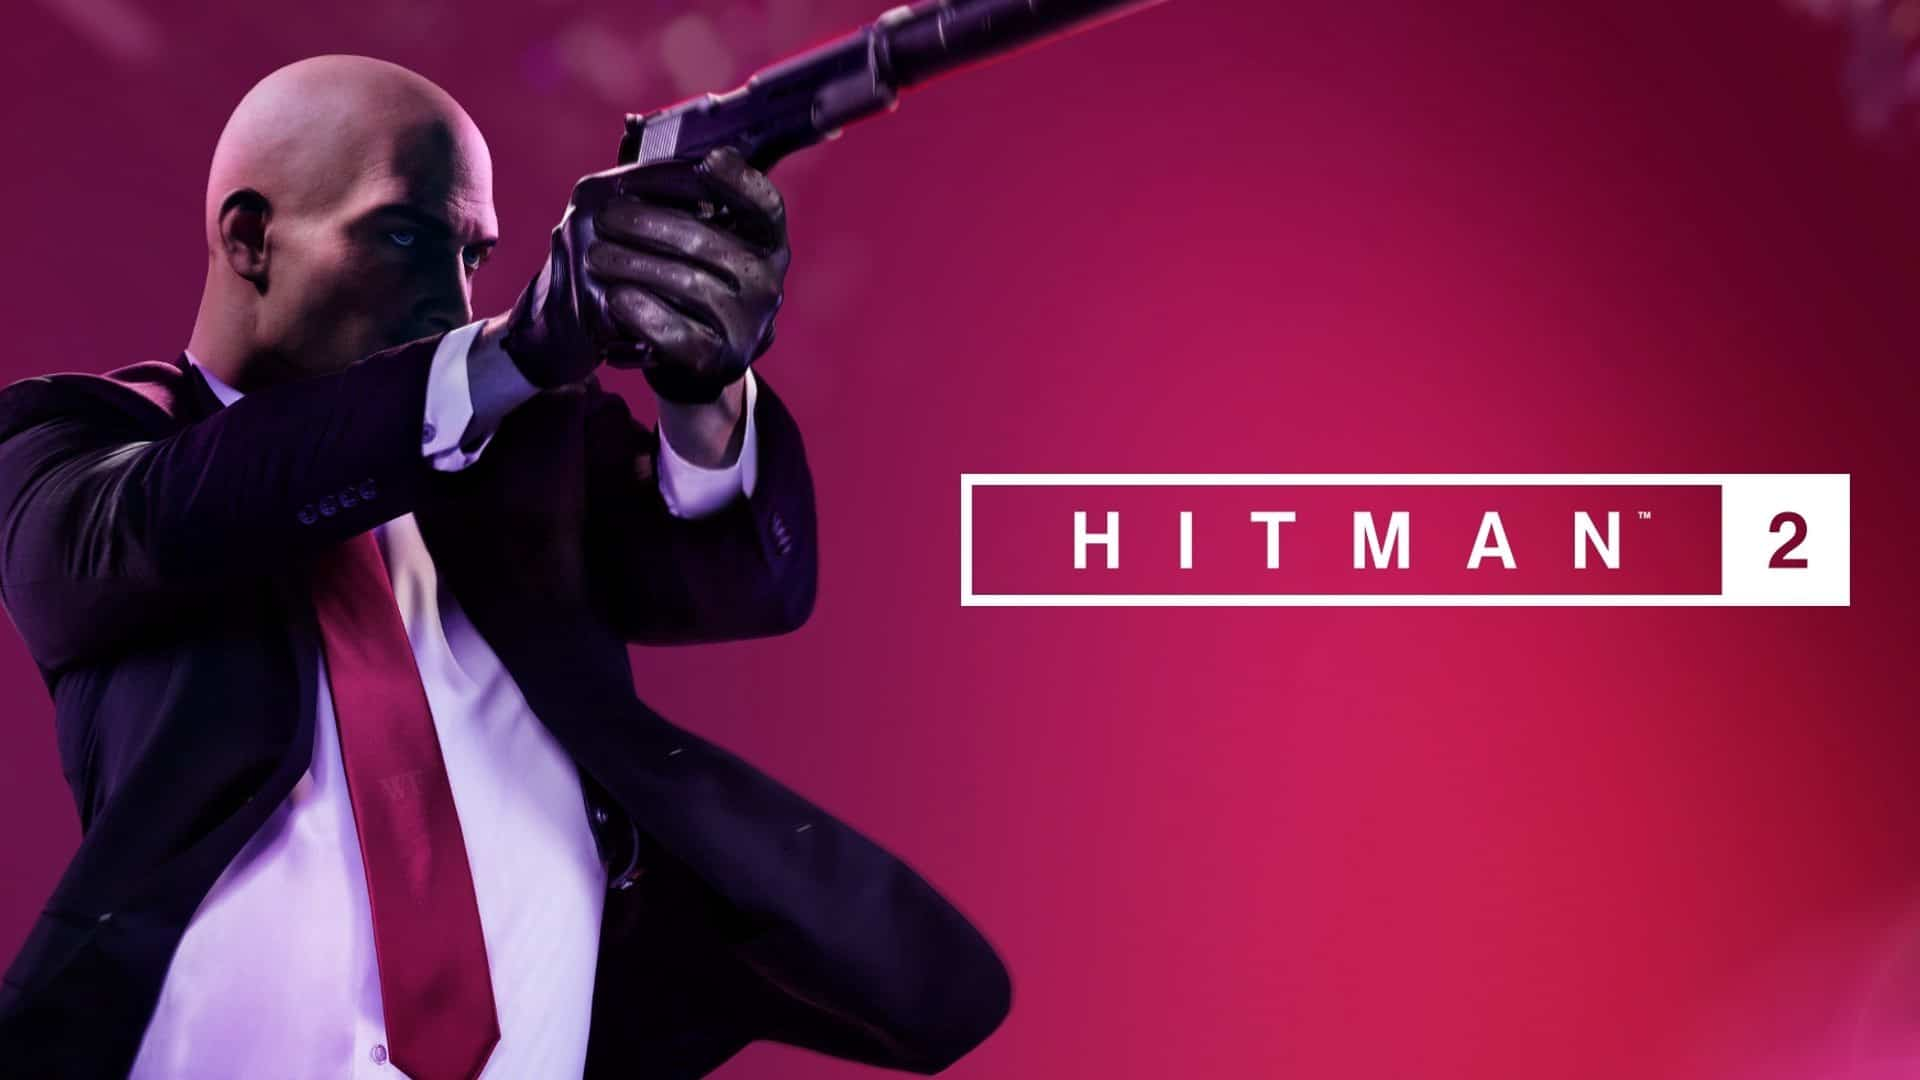 Hitman 2 Content Roadmap Provides First Look At New Locations, Missions And Sniper Maps